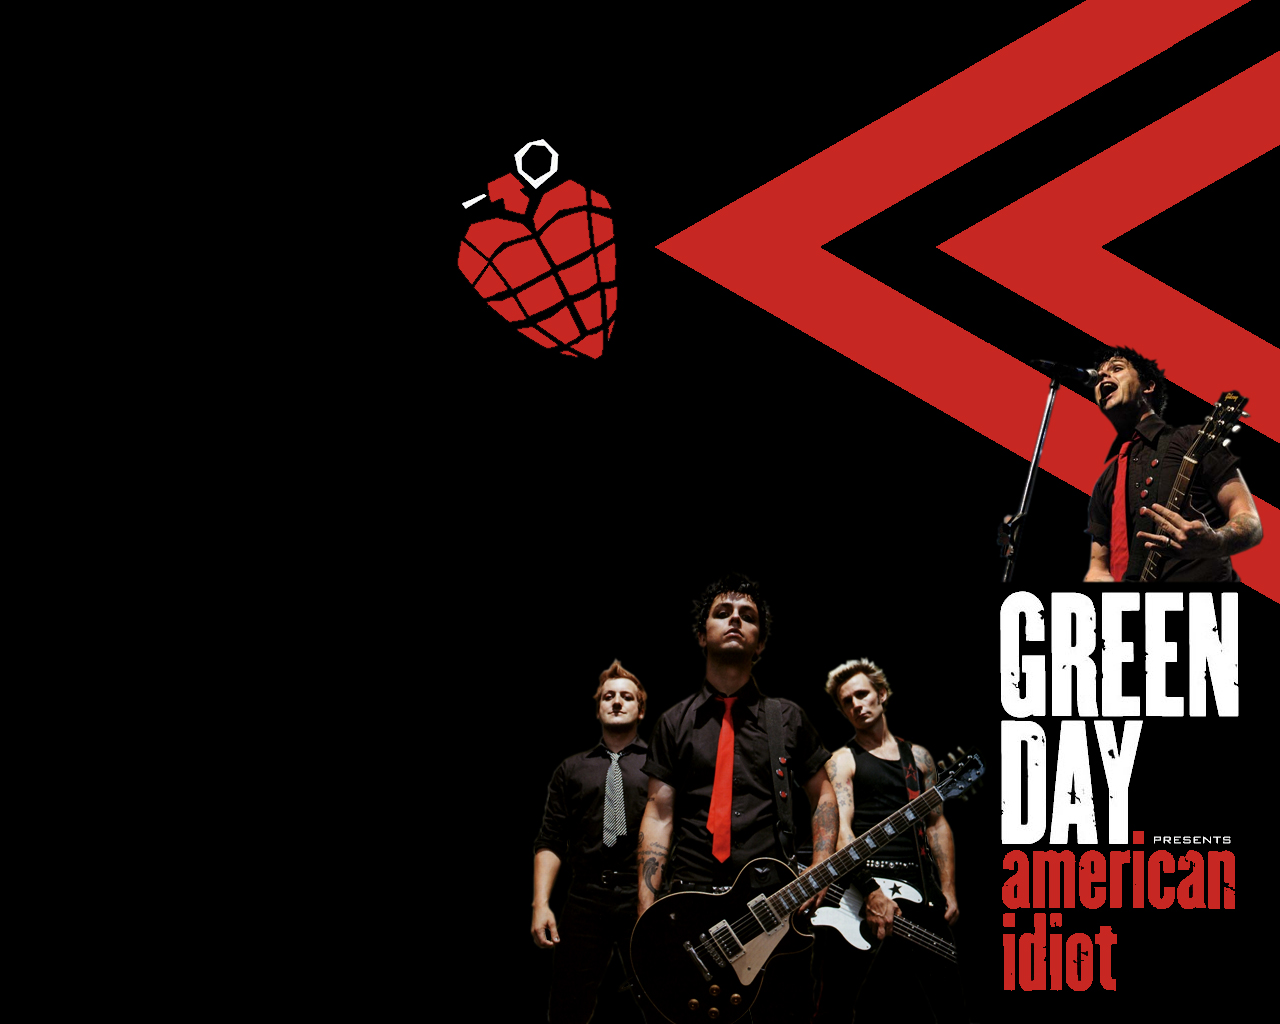 Best 39 Idiot Wallpaper on HipWallpaper Green Day American 1280x1024